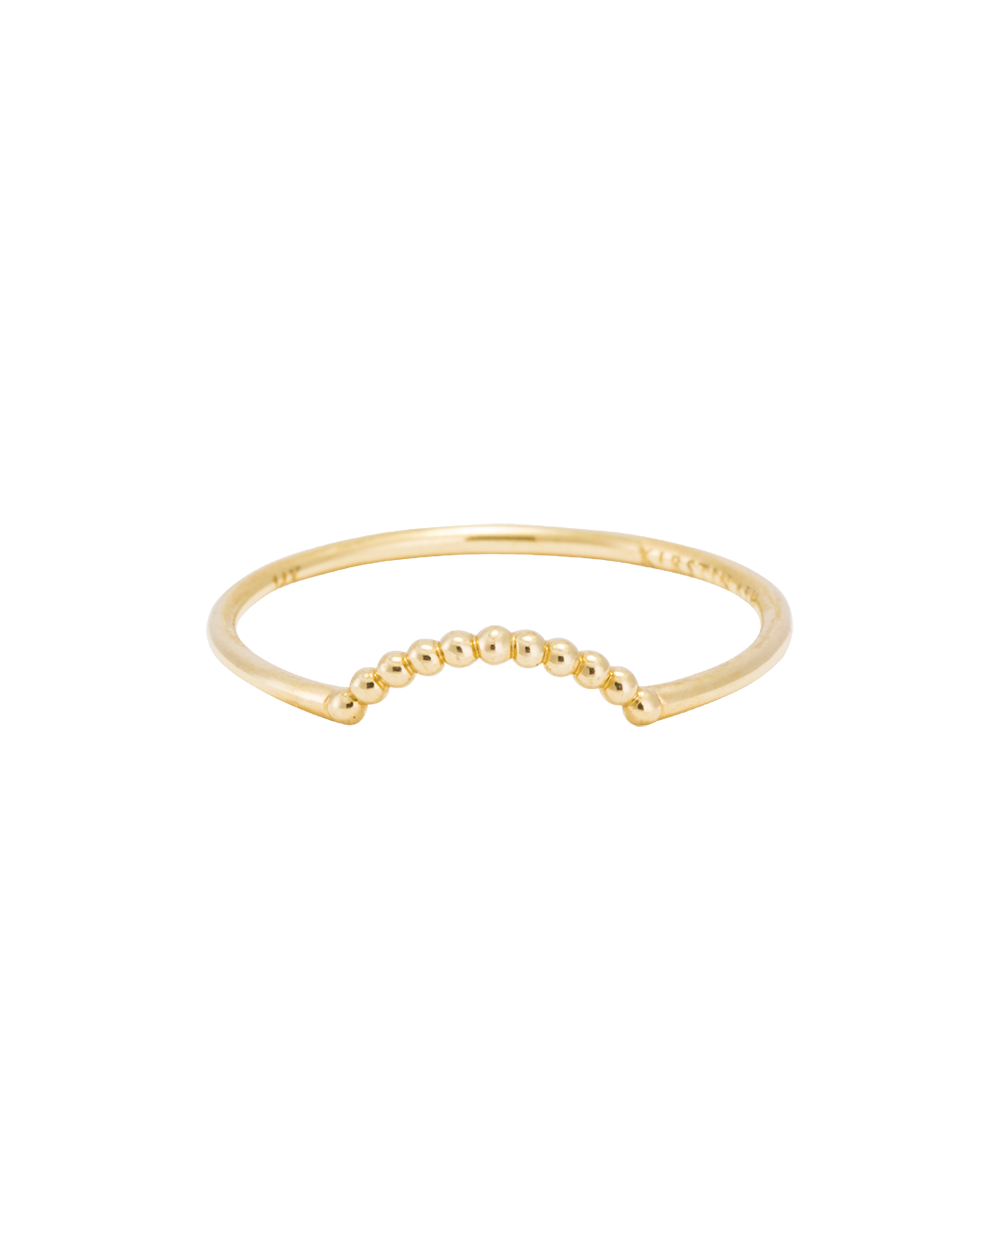 ARC RING (14K GOLD) Image 03